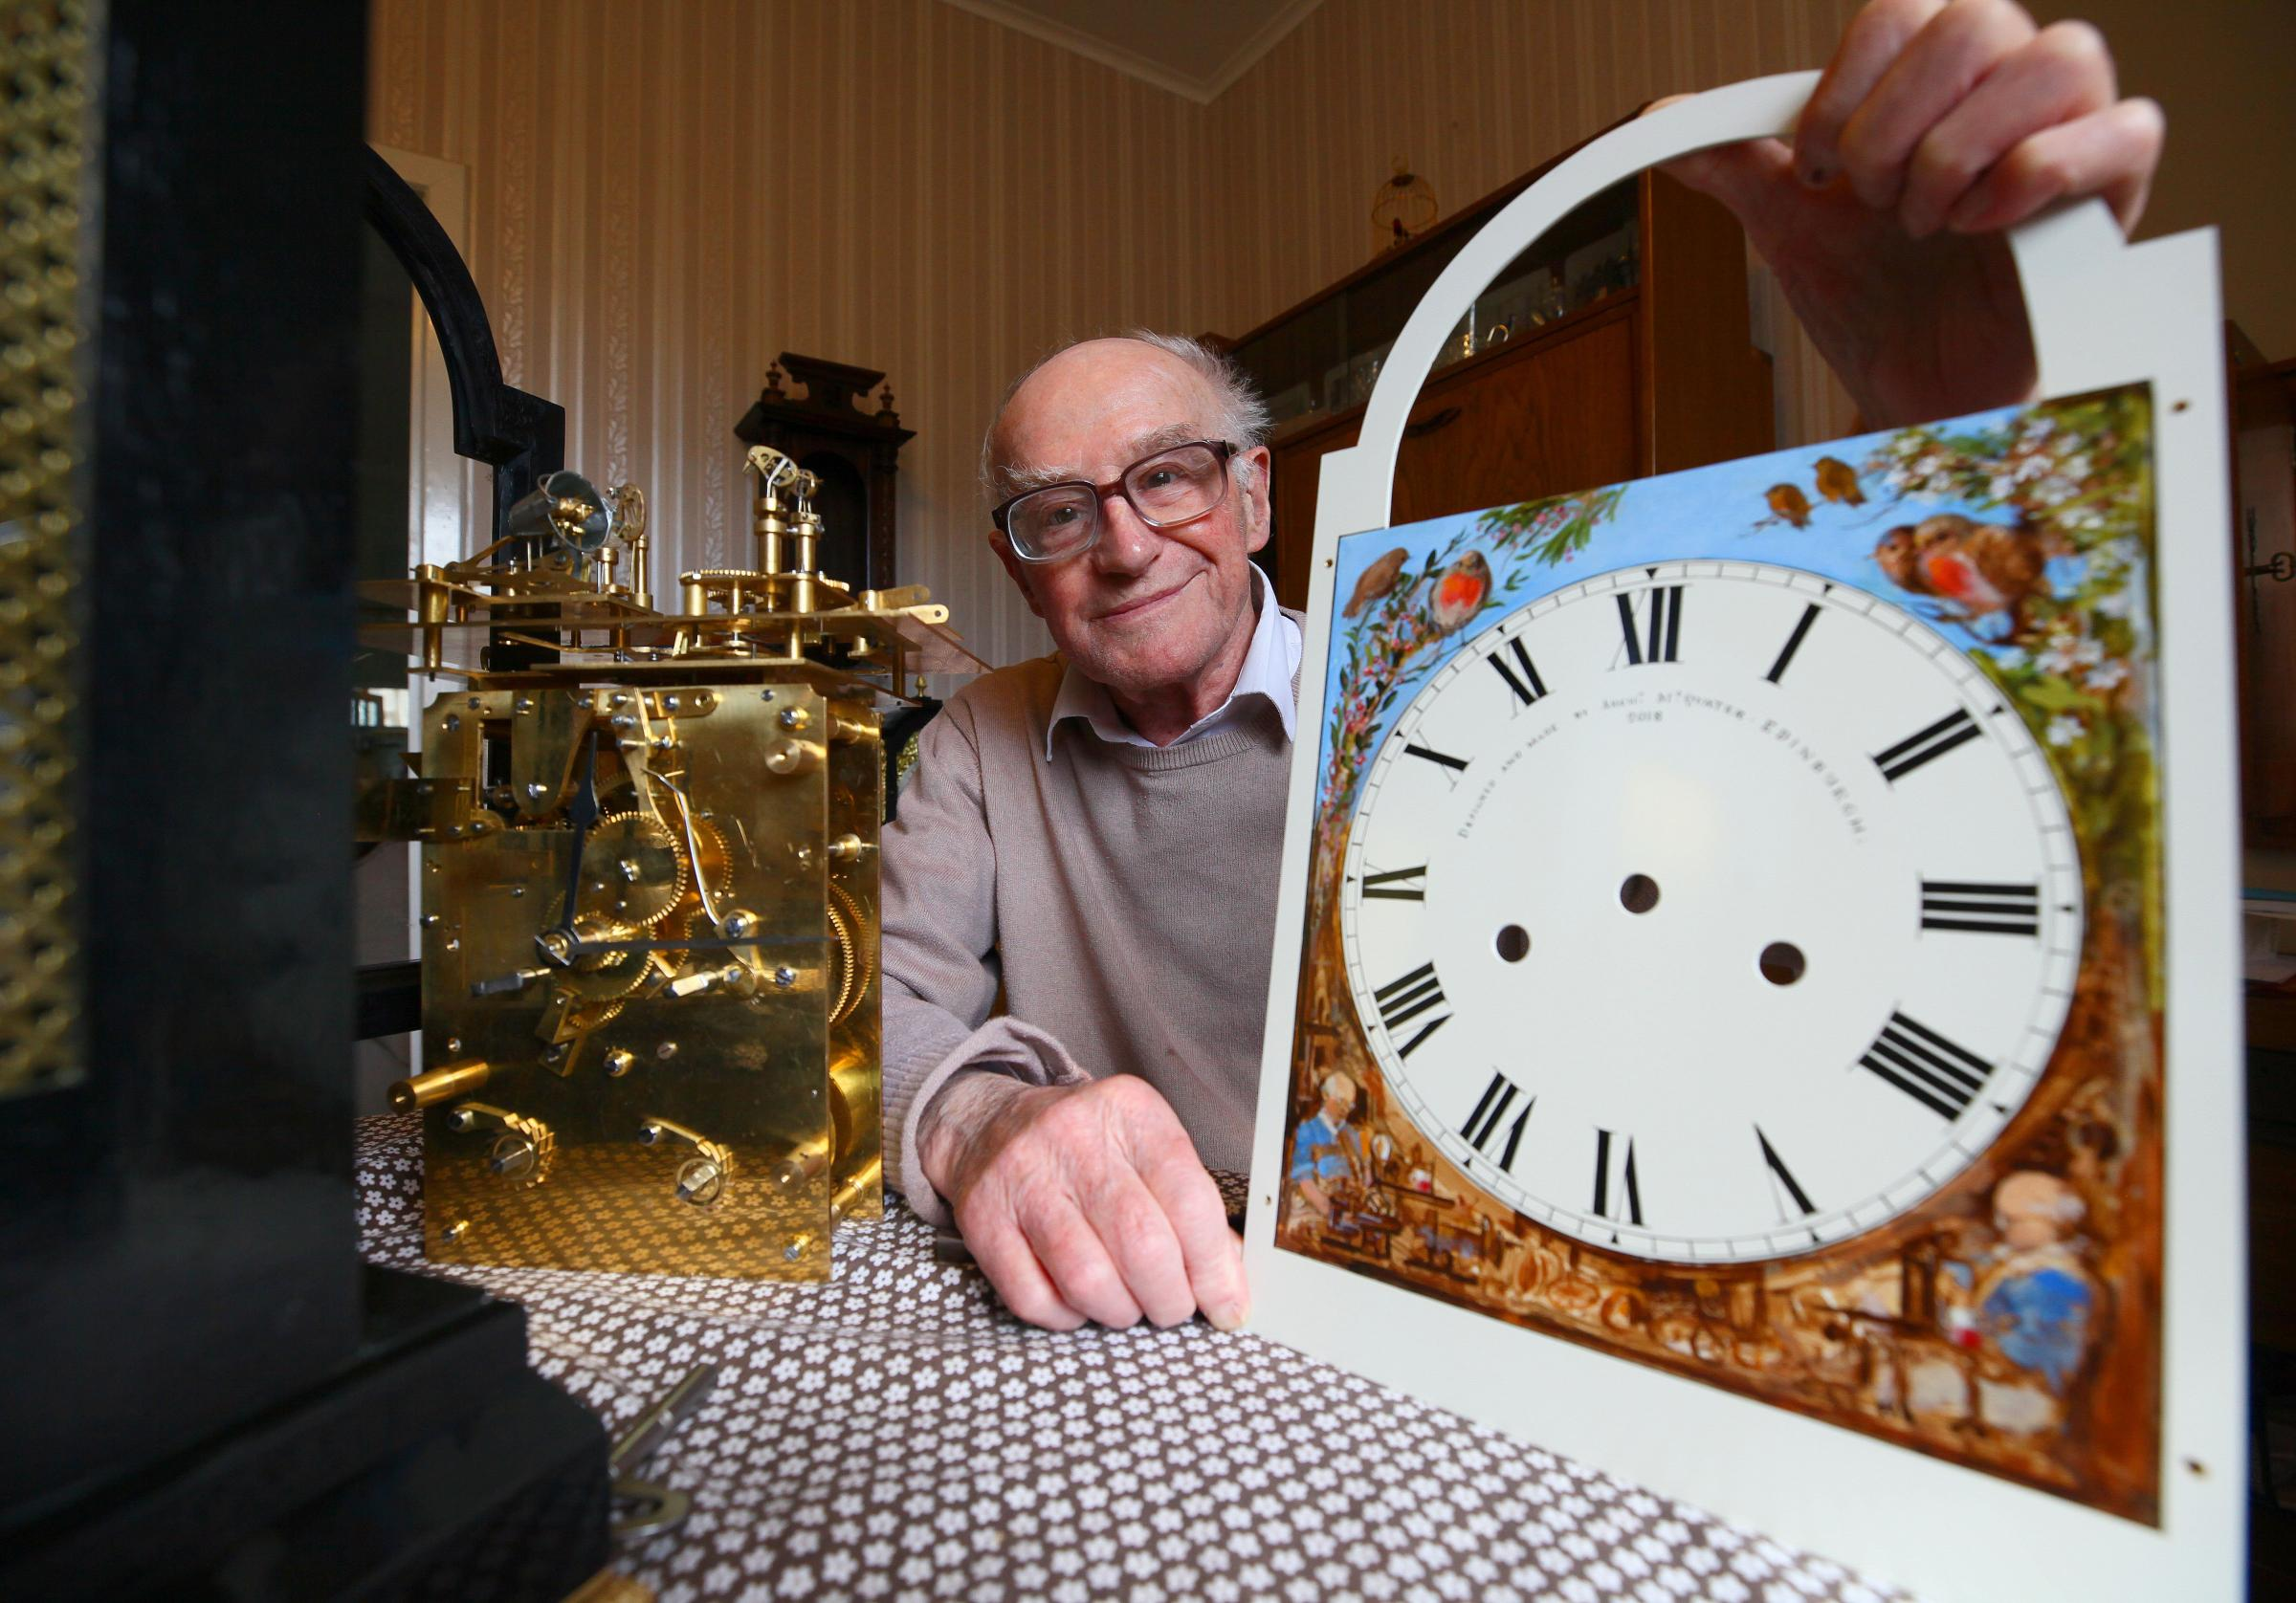 Scotland's old father time: Archie McQuater the clock maker still ticking along at 91